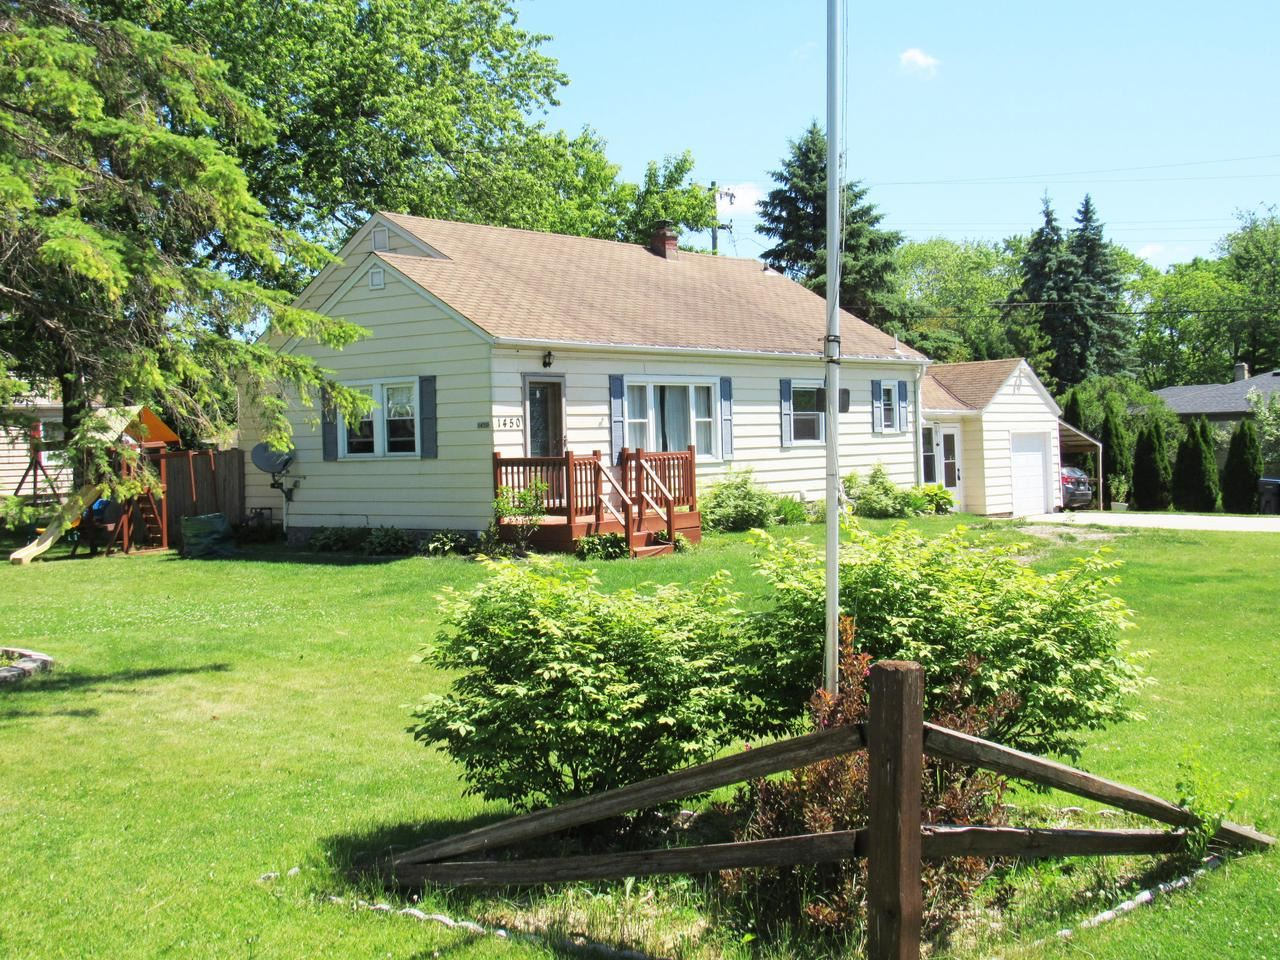 1450 S 167th St, New Berlin, WI 53151 - MLS#: 1696030